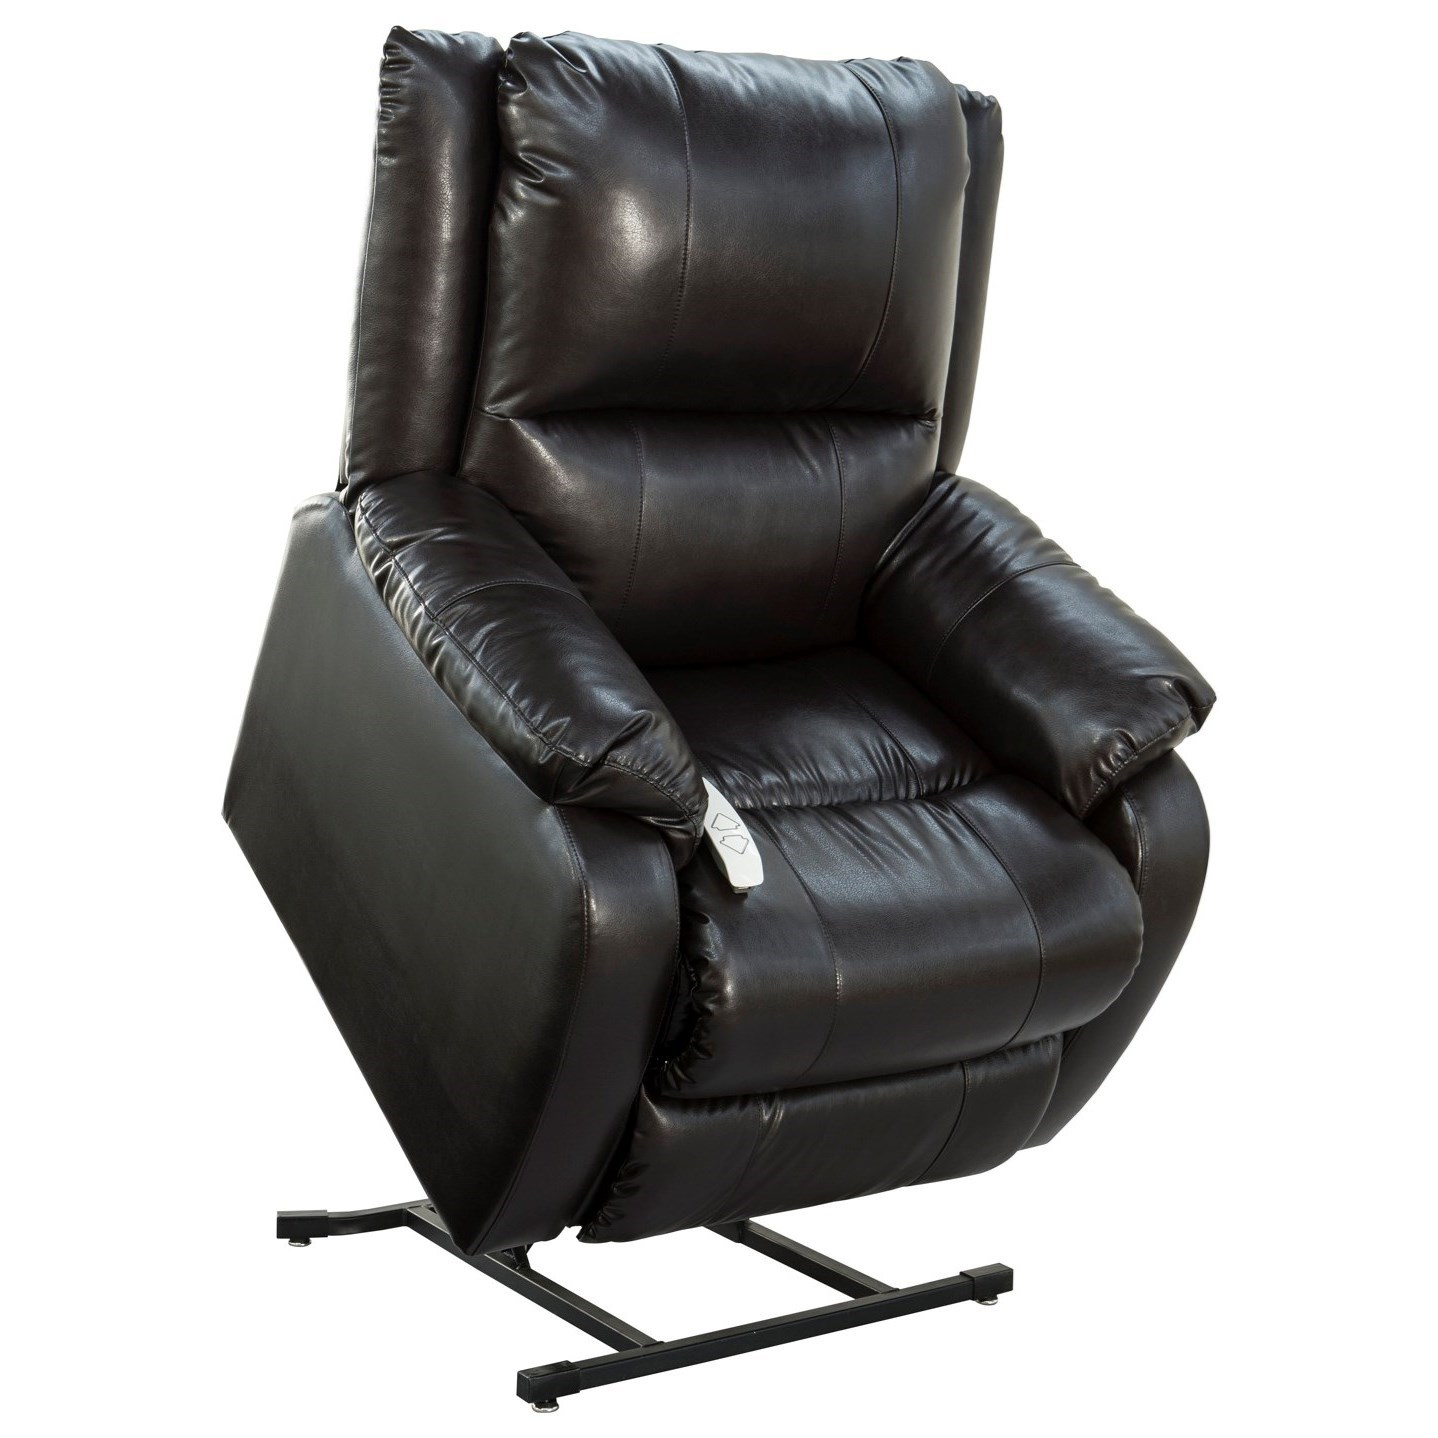 lift chair walgreens chairside table windermere motion chairs nm 2650 3 position reclining